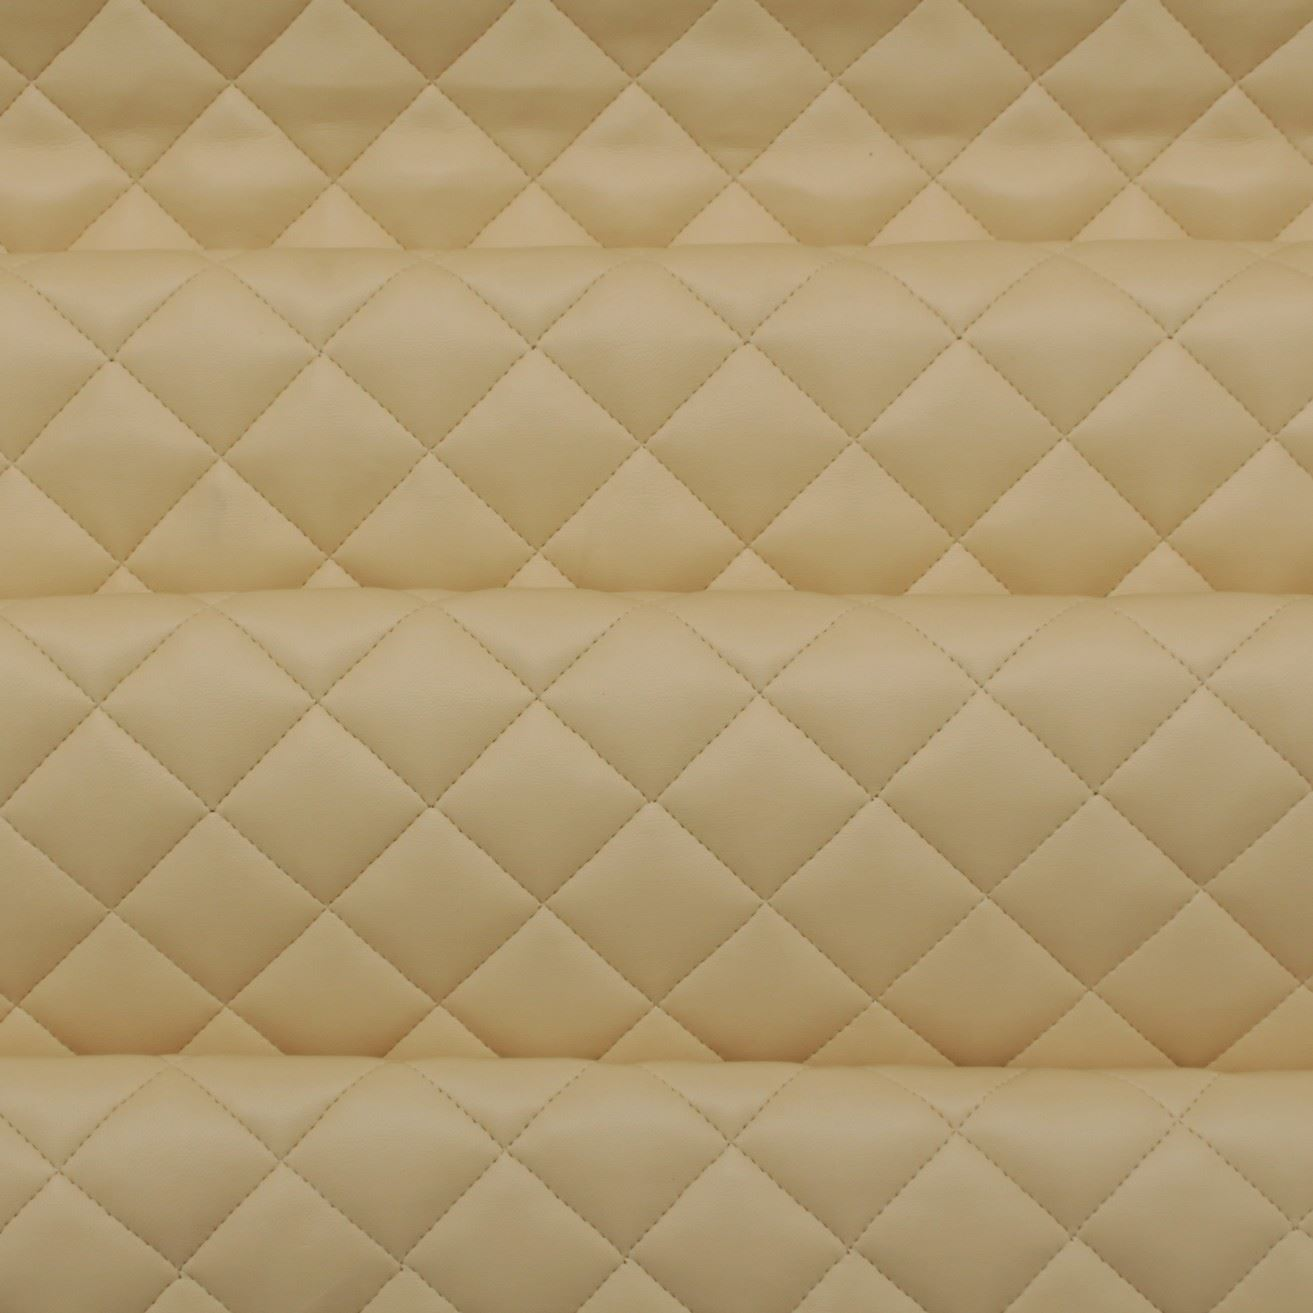 Leather cushion texture - Quilted Leather Faux Leather Diamond Padded Cushion Interior